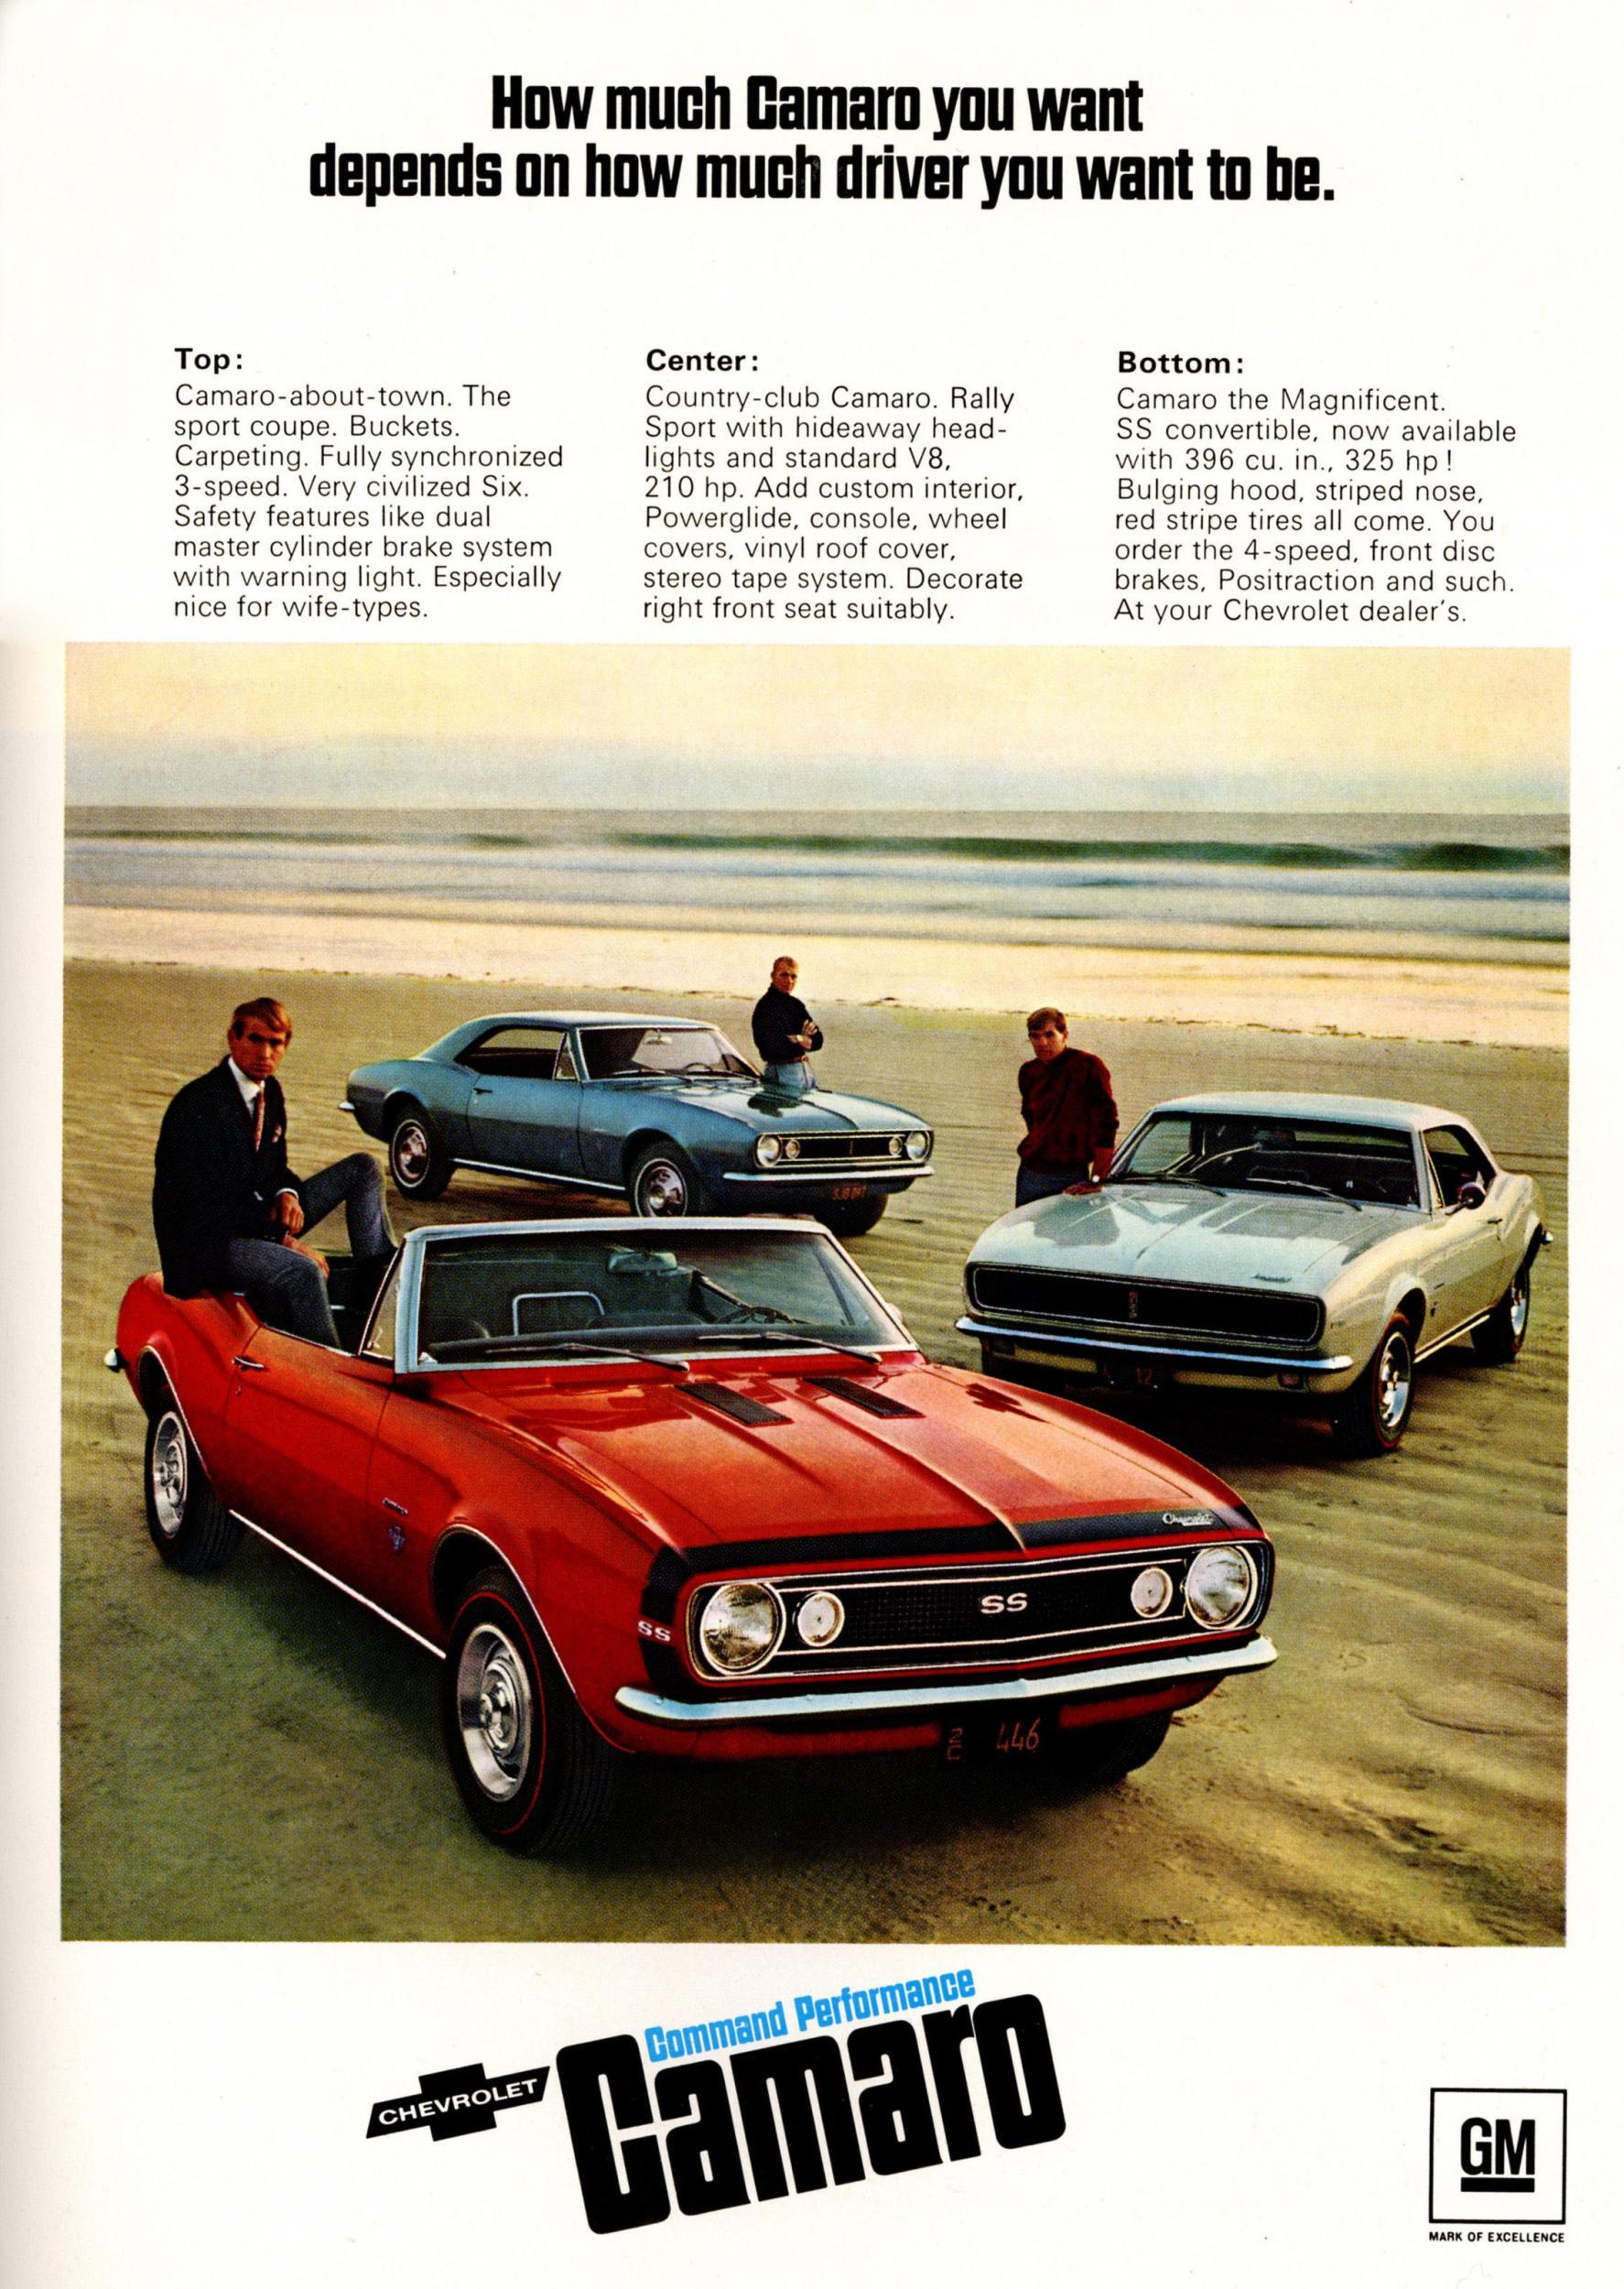 Muscle Car Heaven Americas 50 Year Love Affair With The Camaro 1968 Chevrolet Rs Dub Edition A 1967 Ad Rex Features